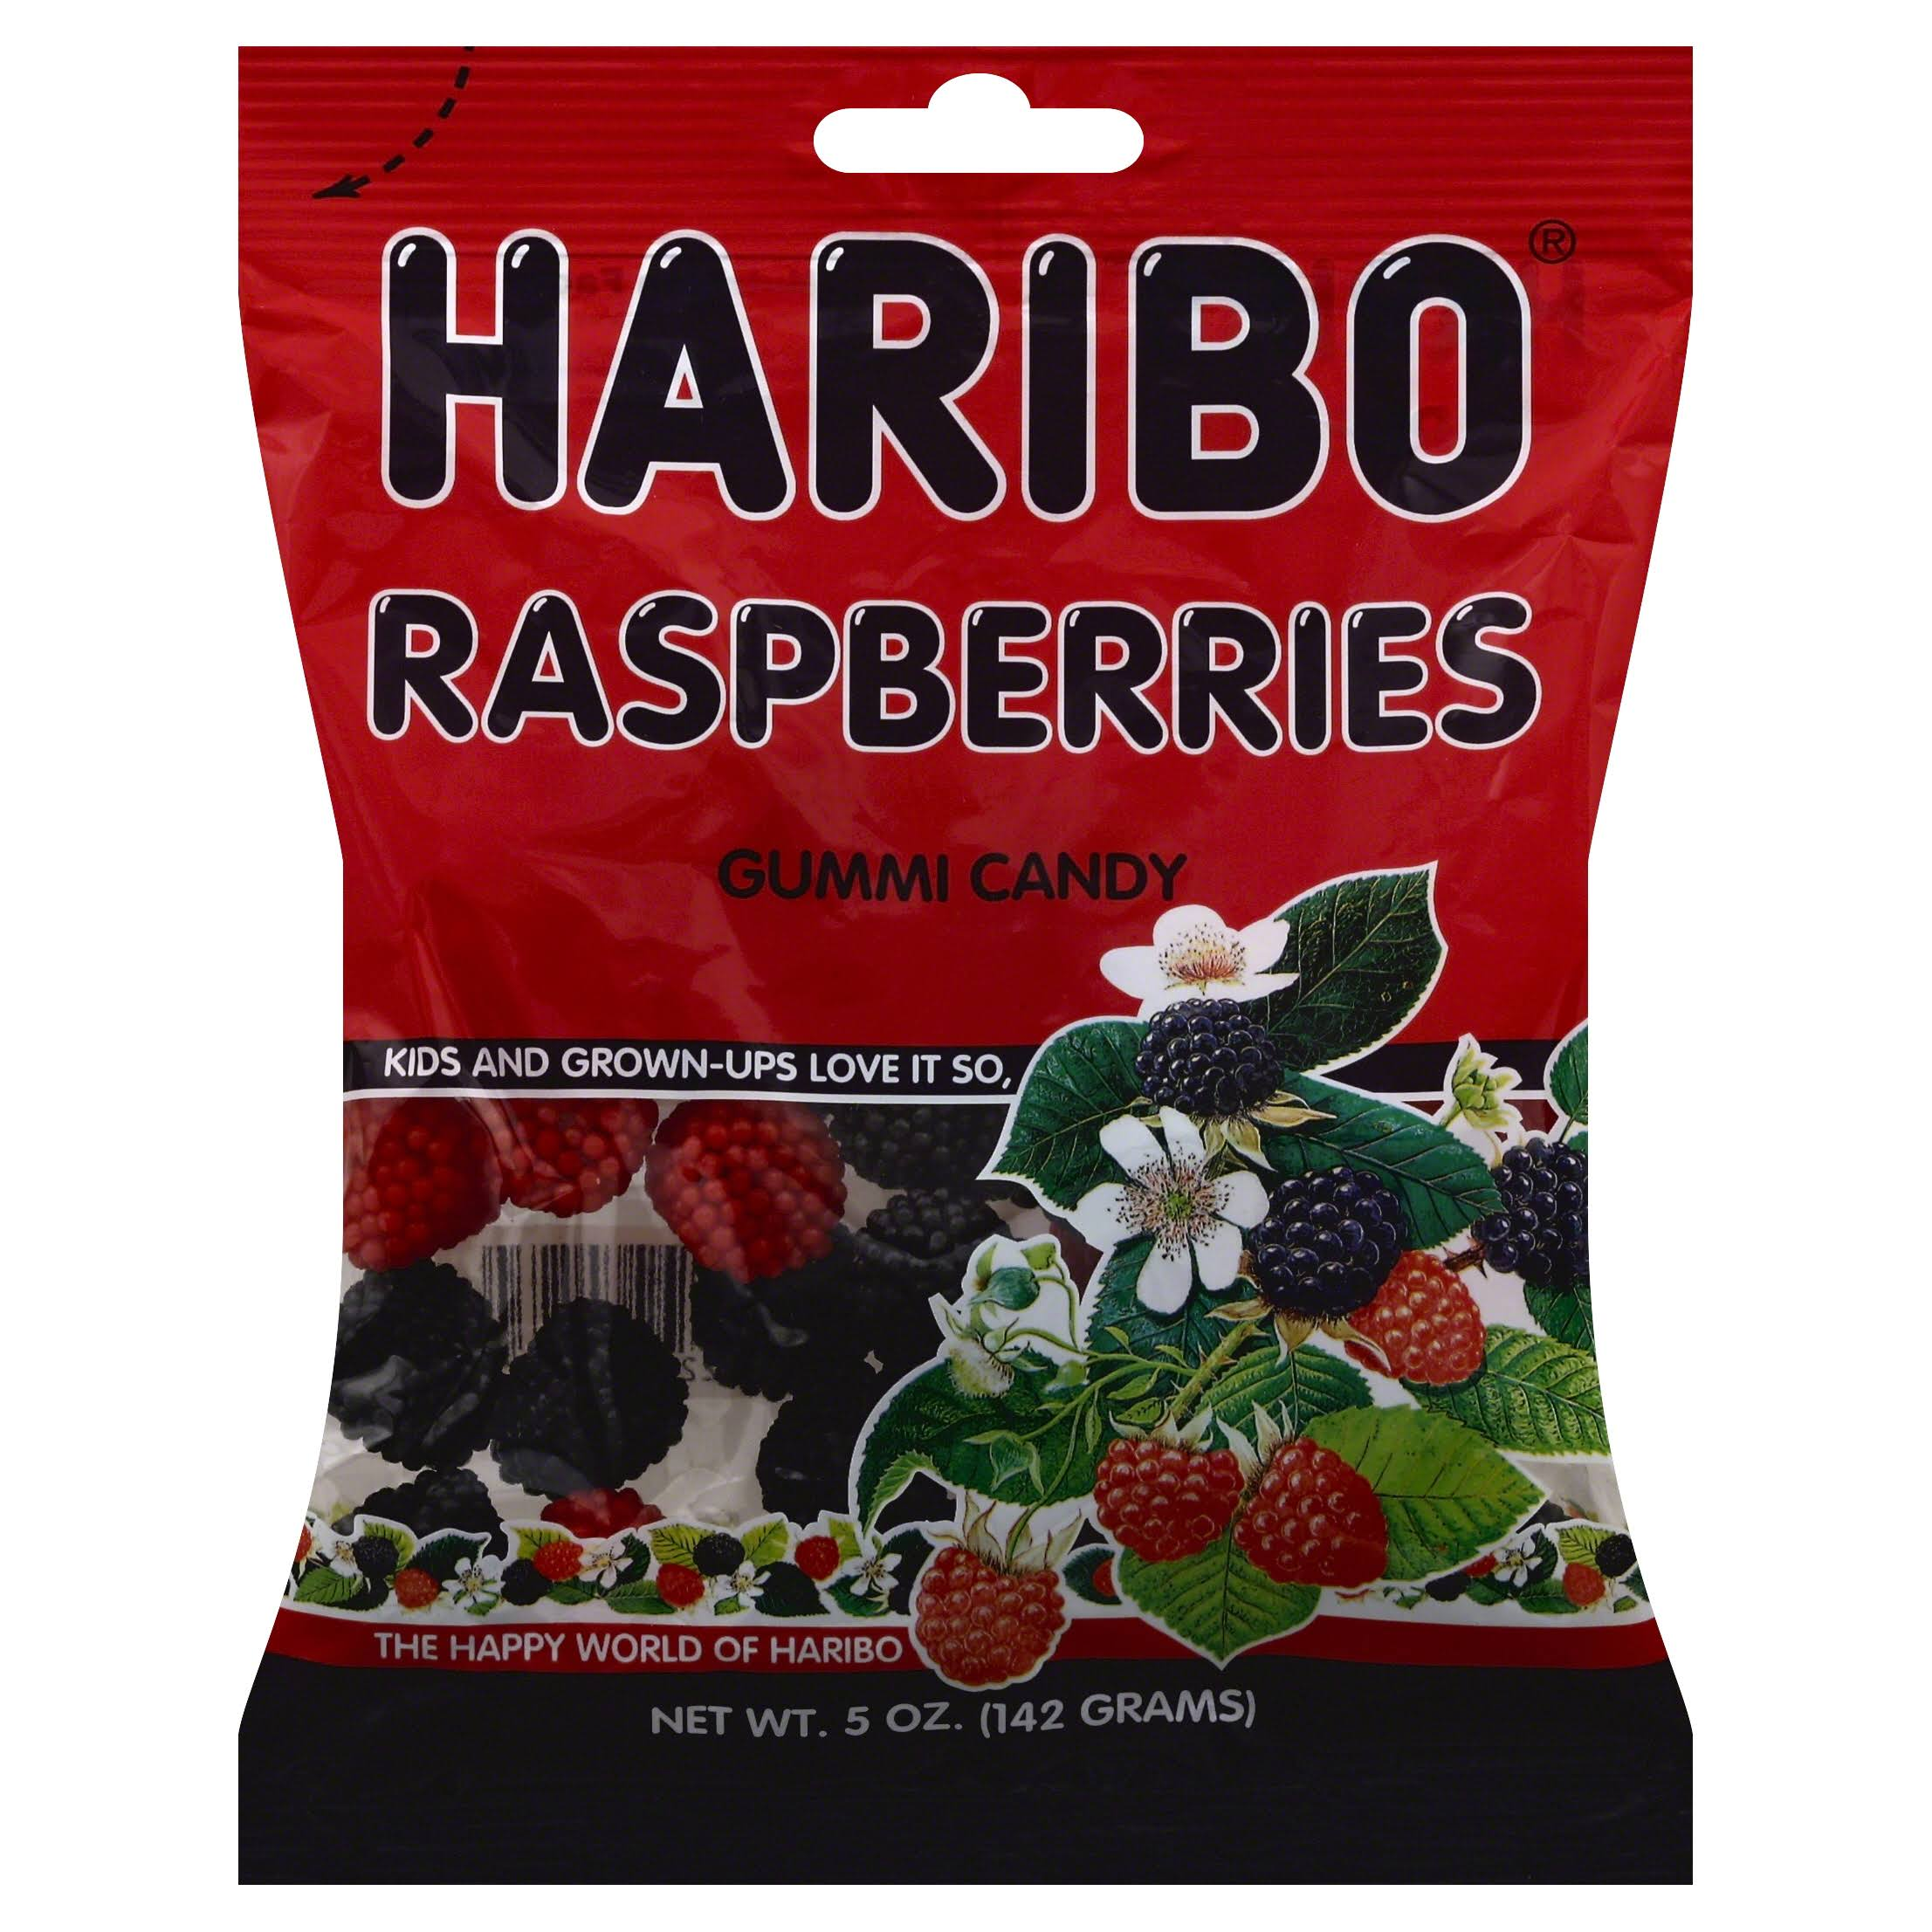 Haribo Gummi Candy - Raspberries